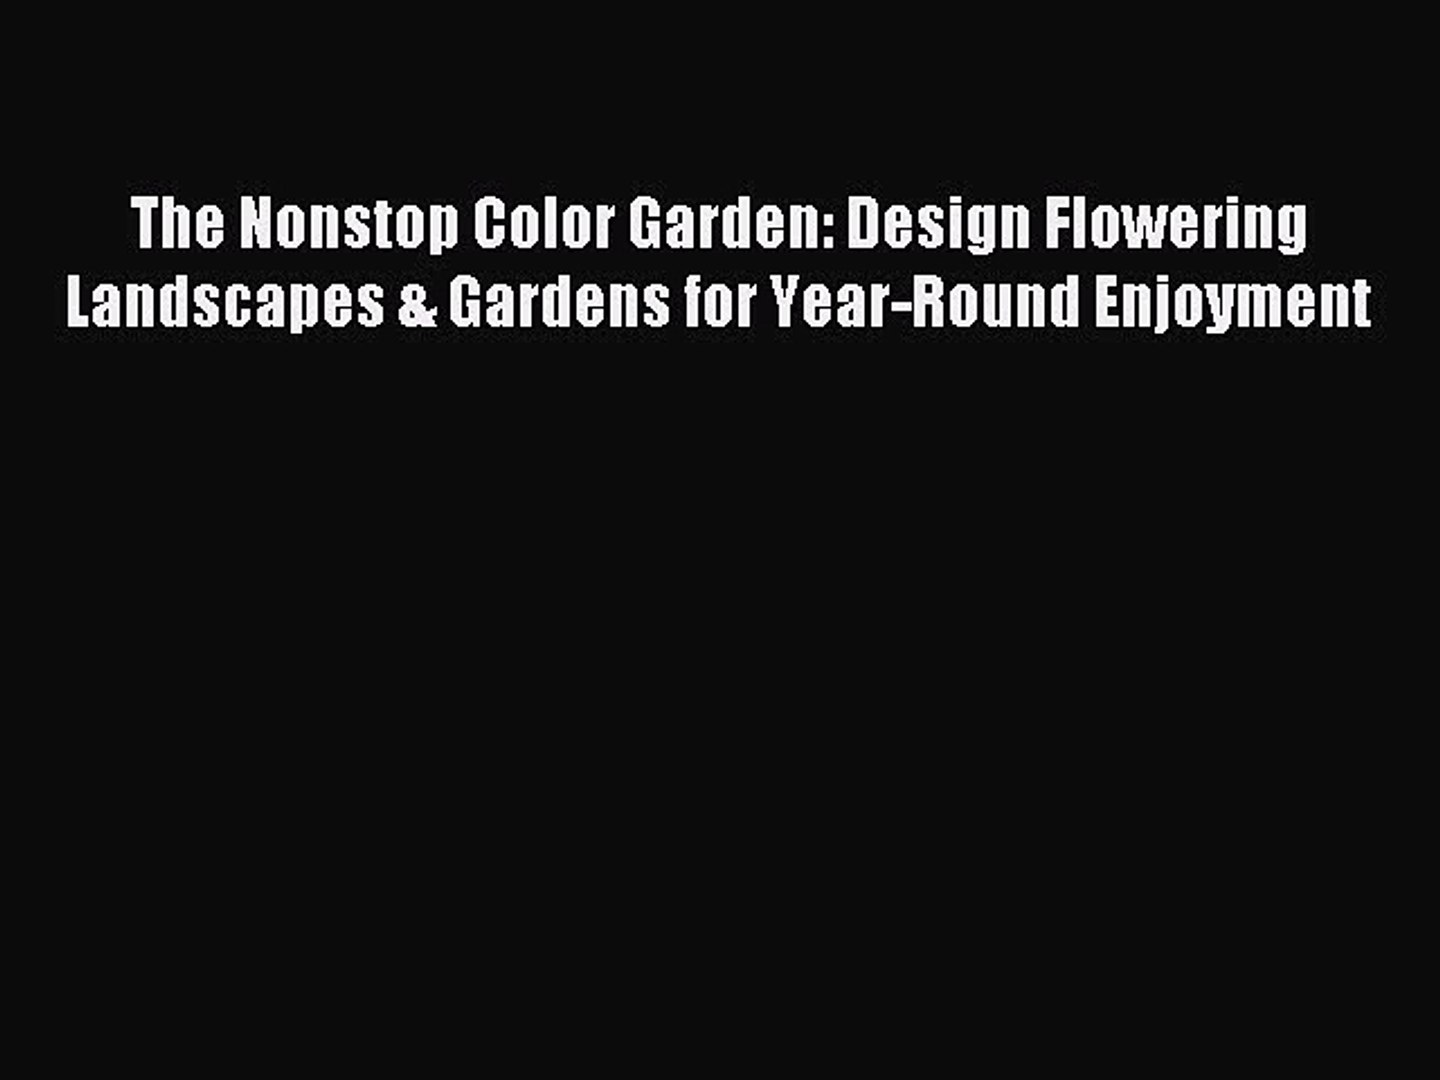 Read The Nonstop Color Garden: Design Flowering Landscapes & Gardens for Year-Round Enjoyment